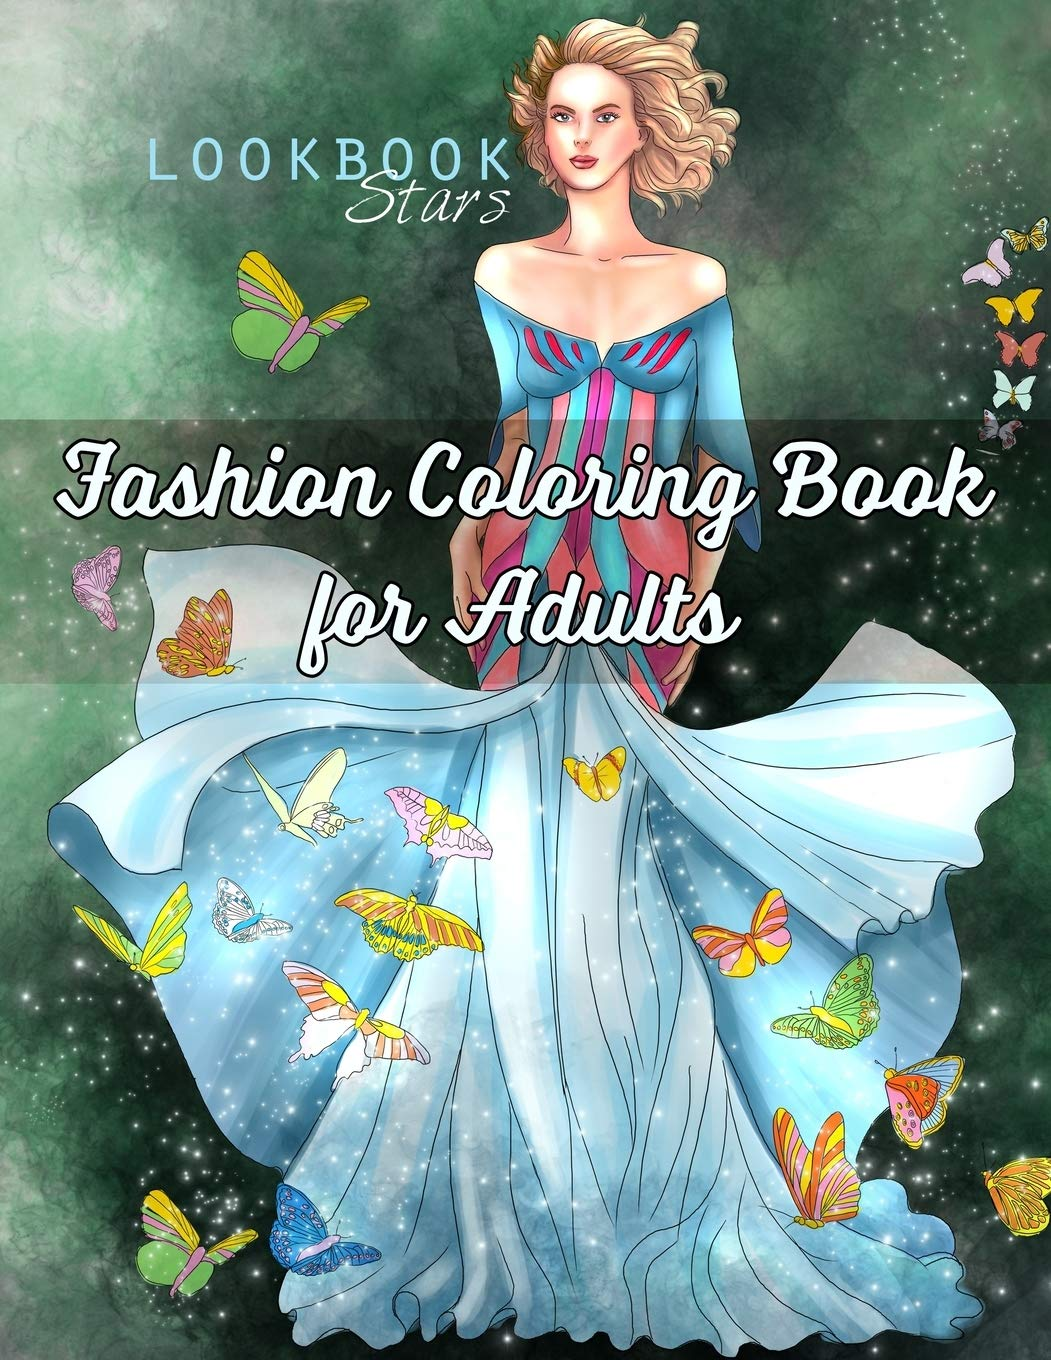 Fashion Coloring Book for Adults: An Adult Coloring Book with Fantasy Fashion Illustrations Featuring Whimsical Creatures, Butterflies, Unicorns and Flowers